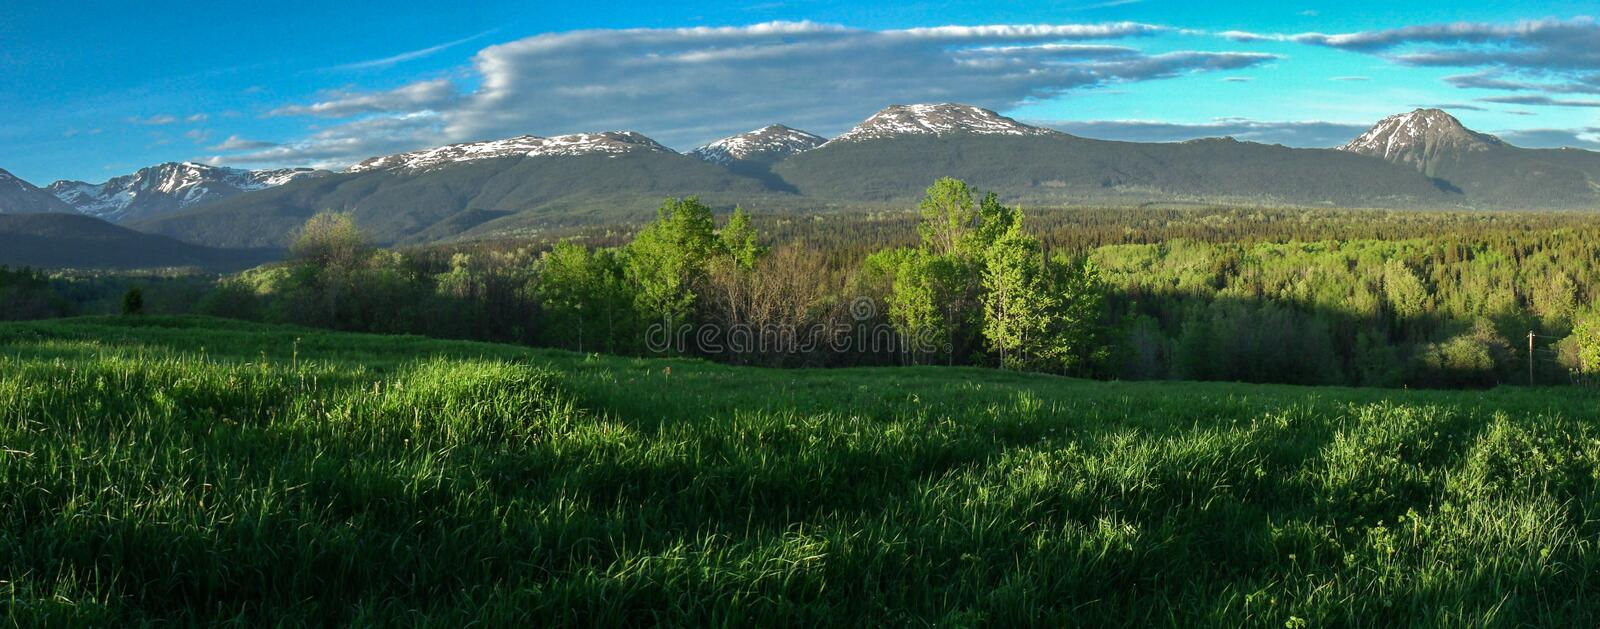 Babine Mountain Park - Northern BC Canada. A panoramic view of the Babine Mountain Park from a western view point looking east. The park is located just east of royalty free stock images